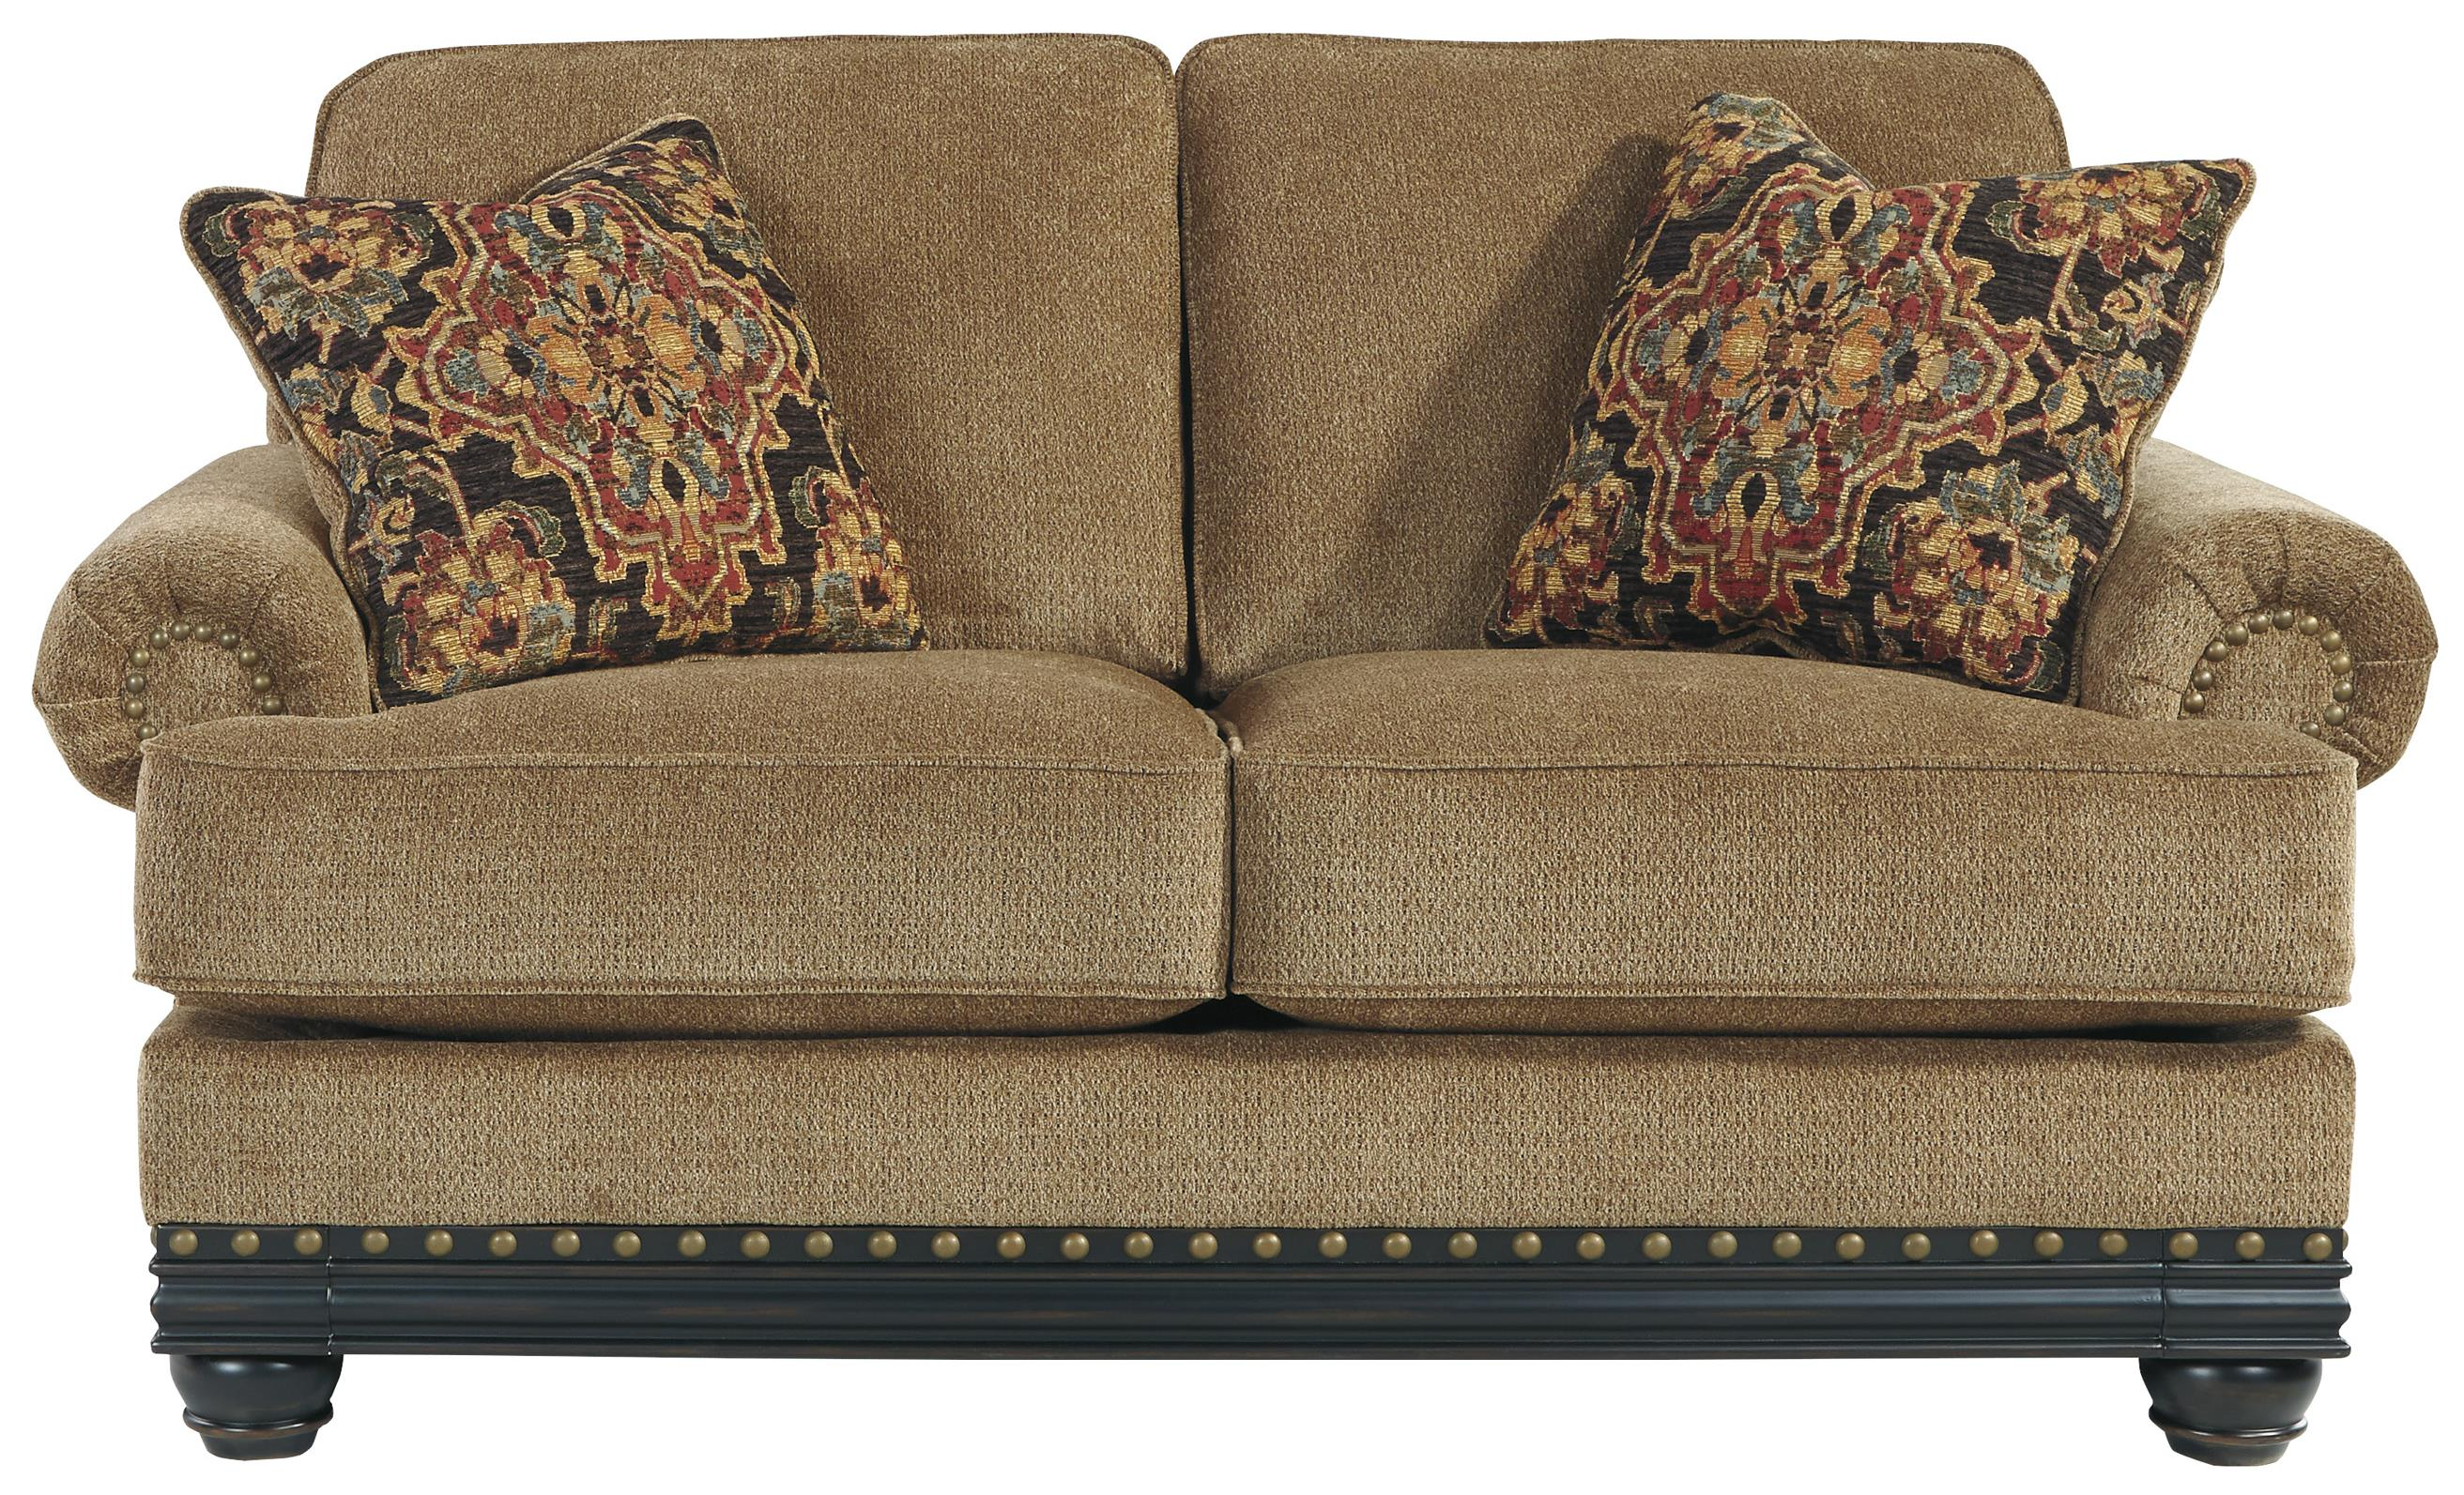 Signature Design by Ashley Elnora Loveseat - Item Number: 9370235